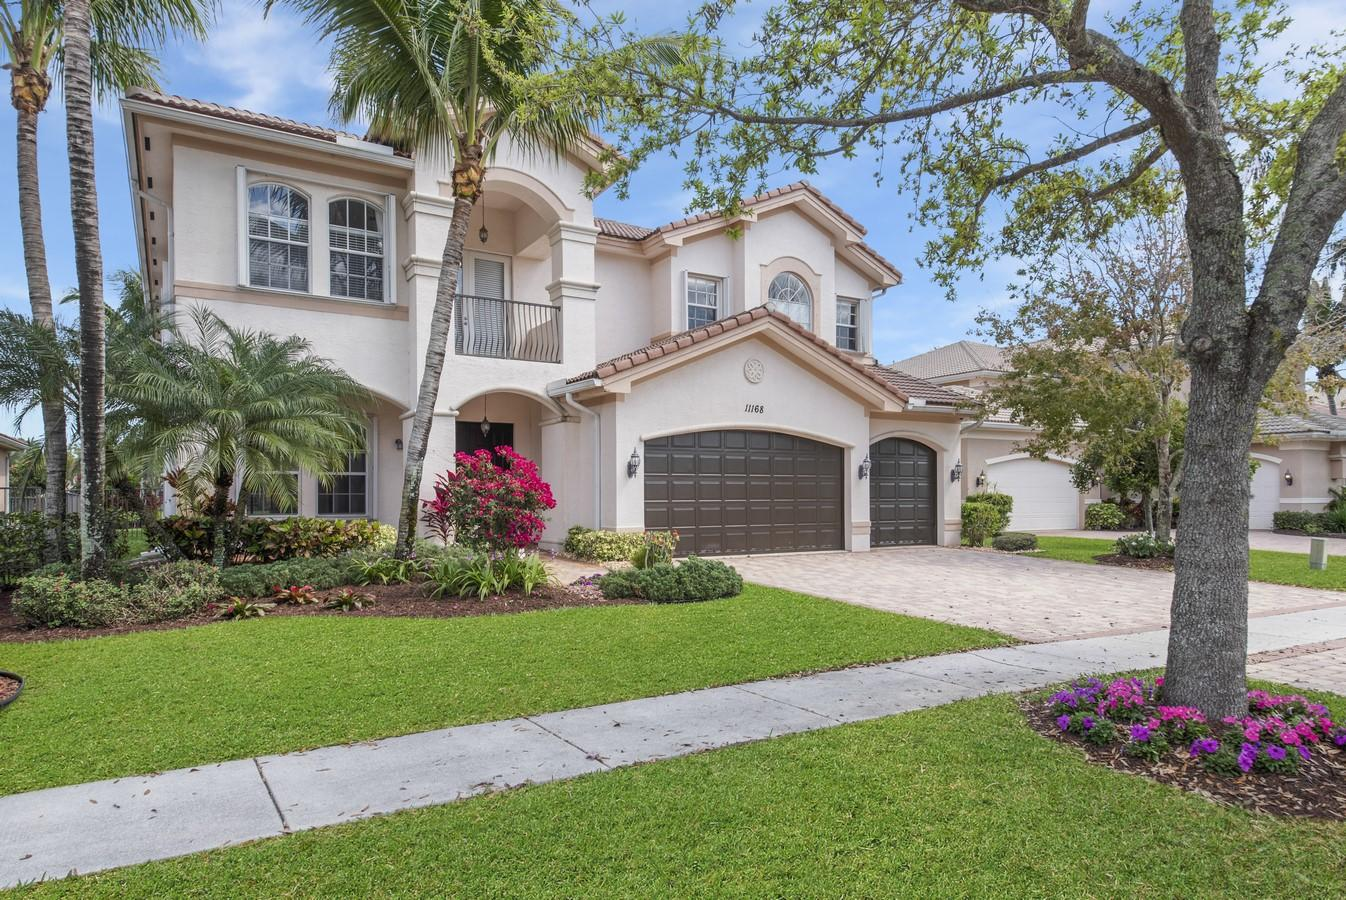 11168 Brandywine Lake Way Boynton Beach, FL 33473